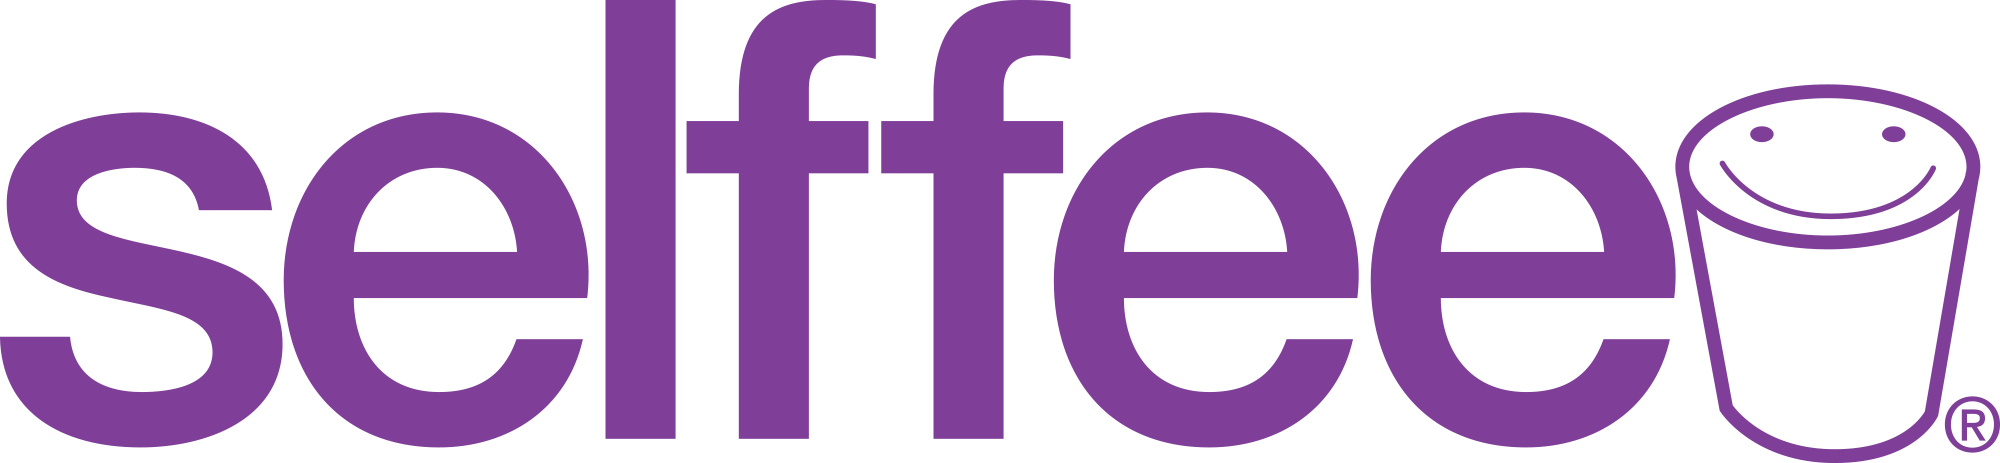 Selffee_Logo_with_cup_purple.png